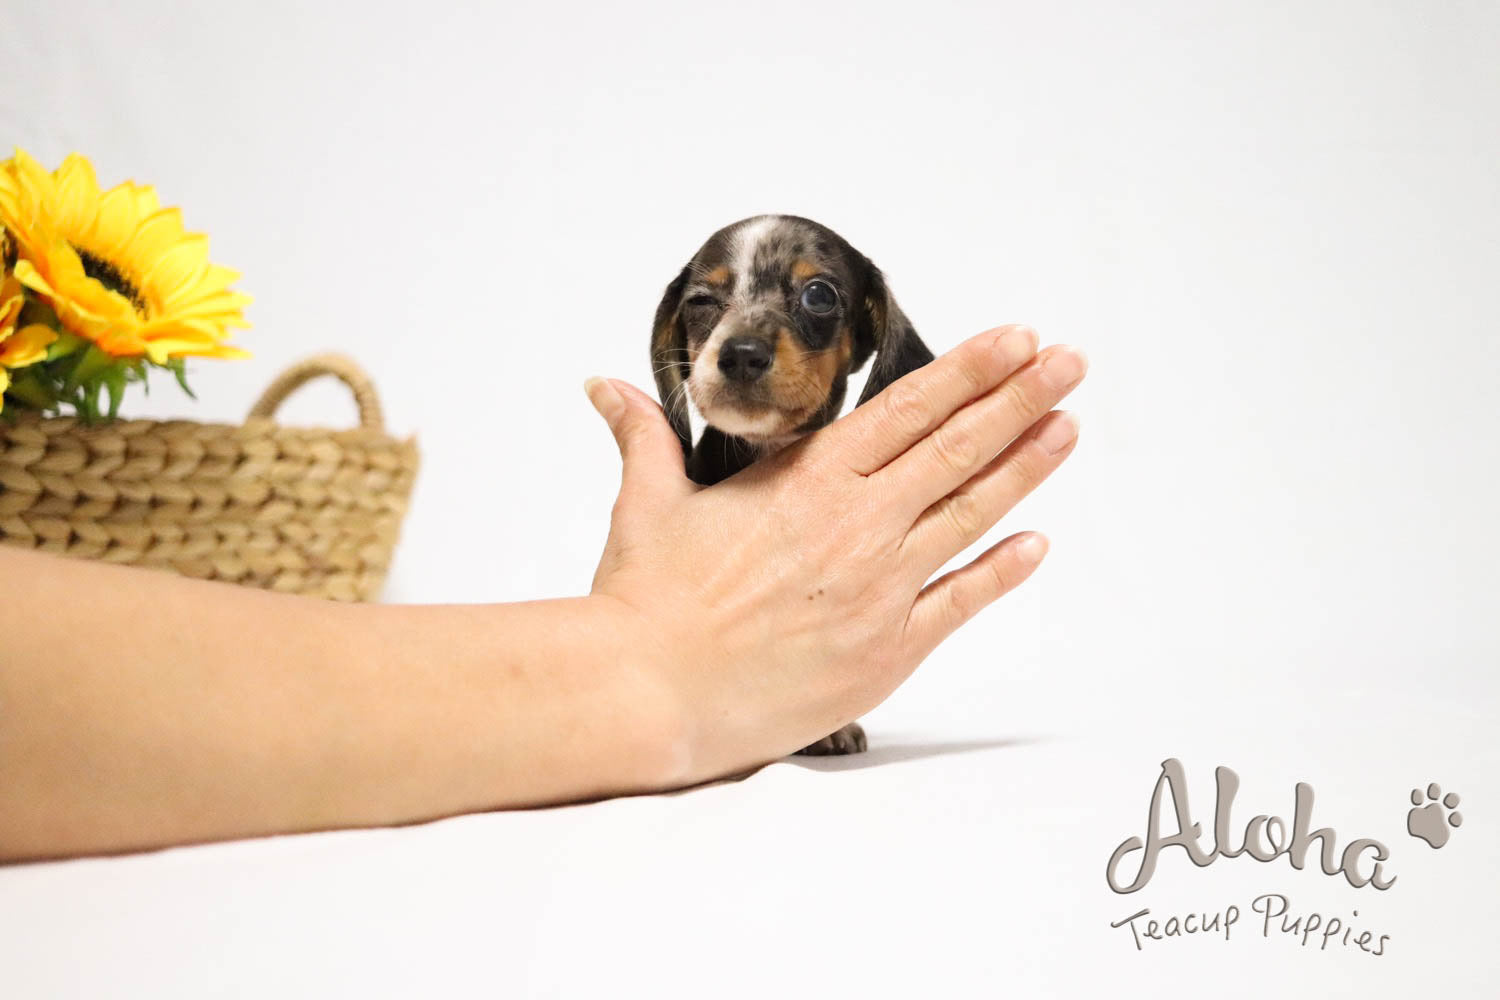 Find out about dachshund's charm😍